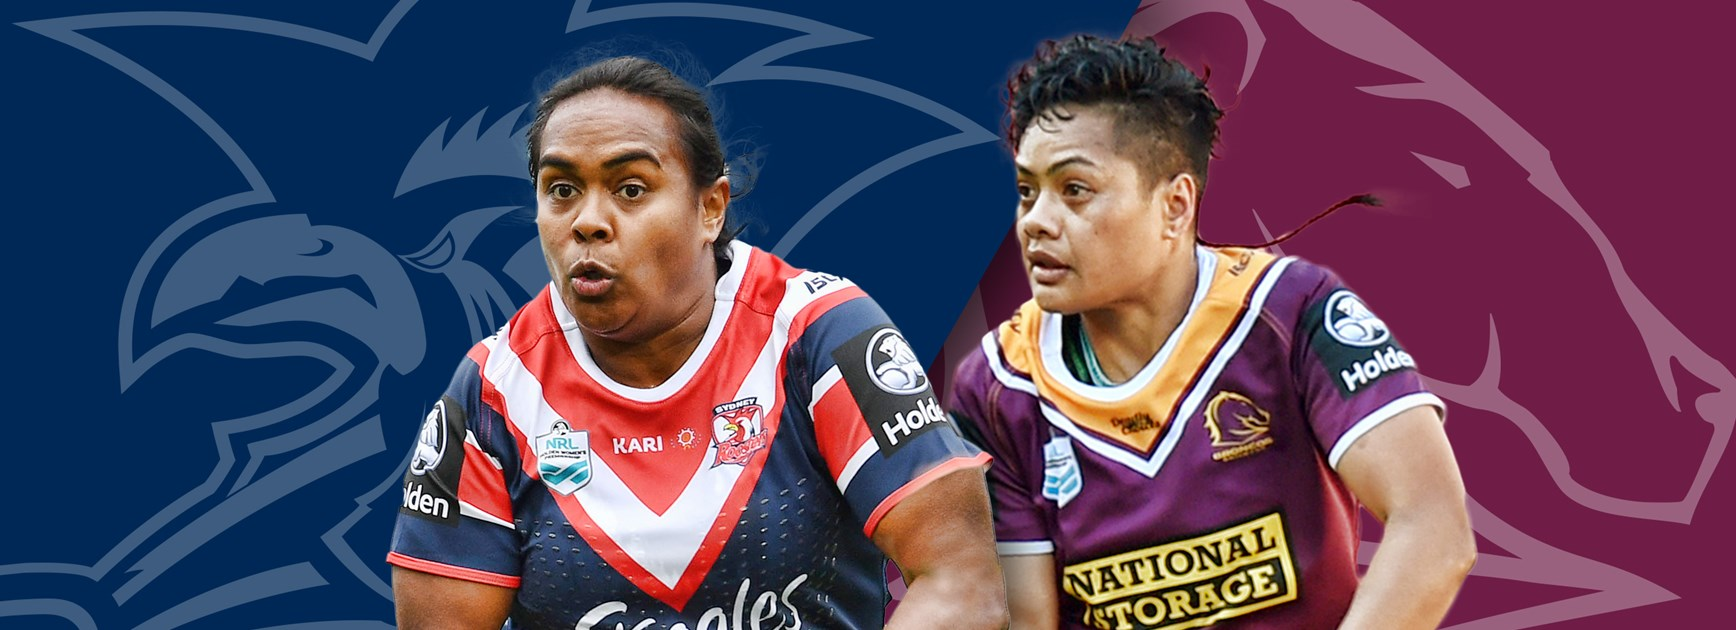 Roosters v Broncos: NRLW Round 2 preview